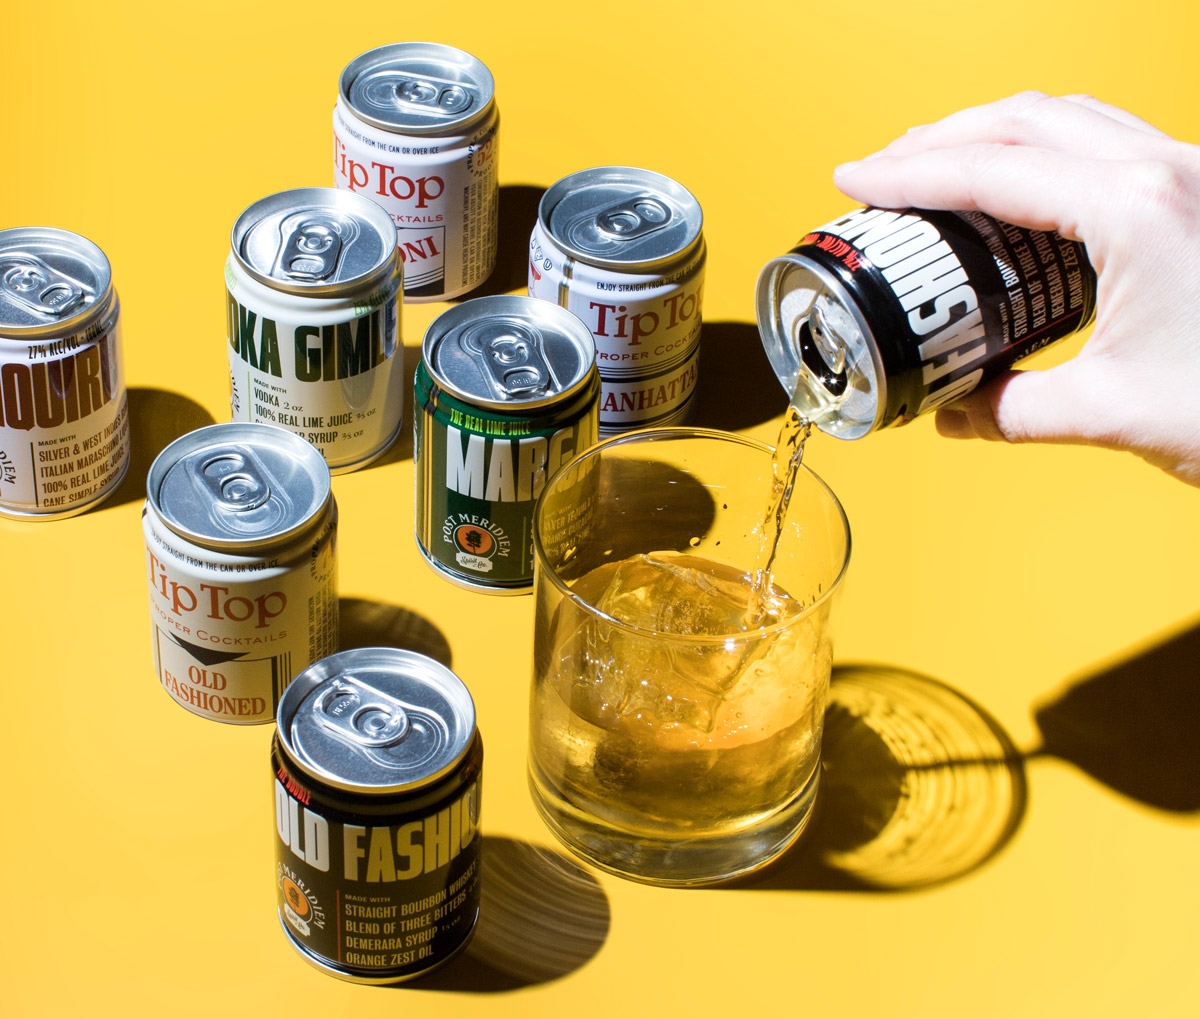 Atlanta canned cocktails